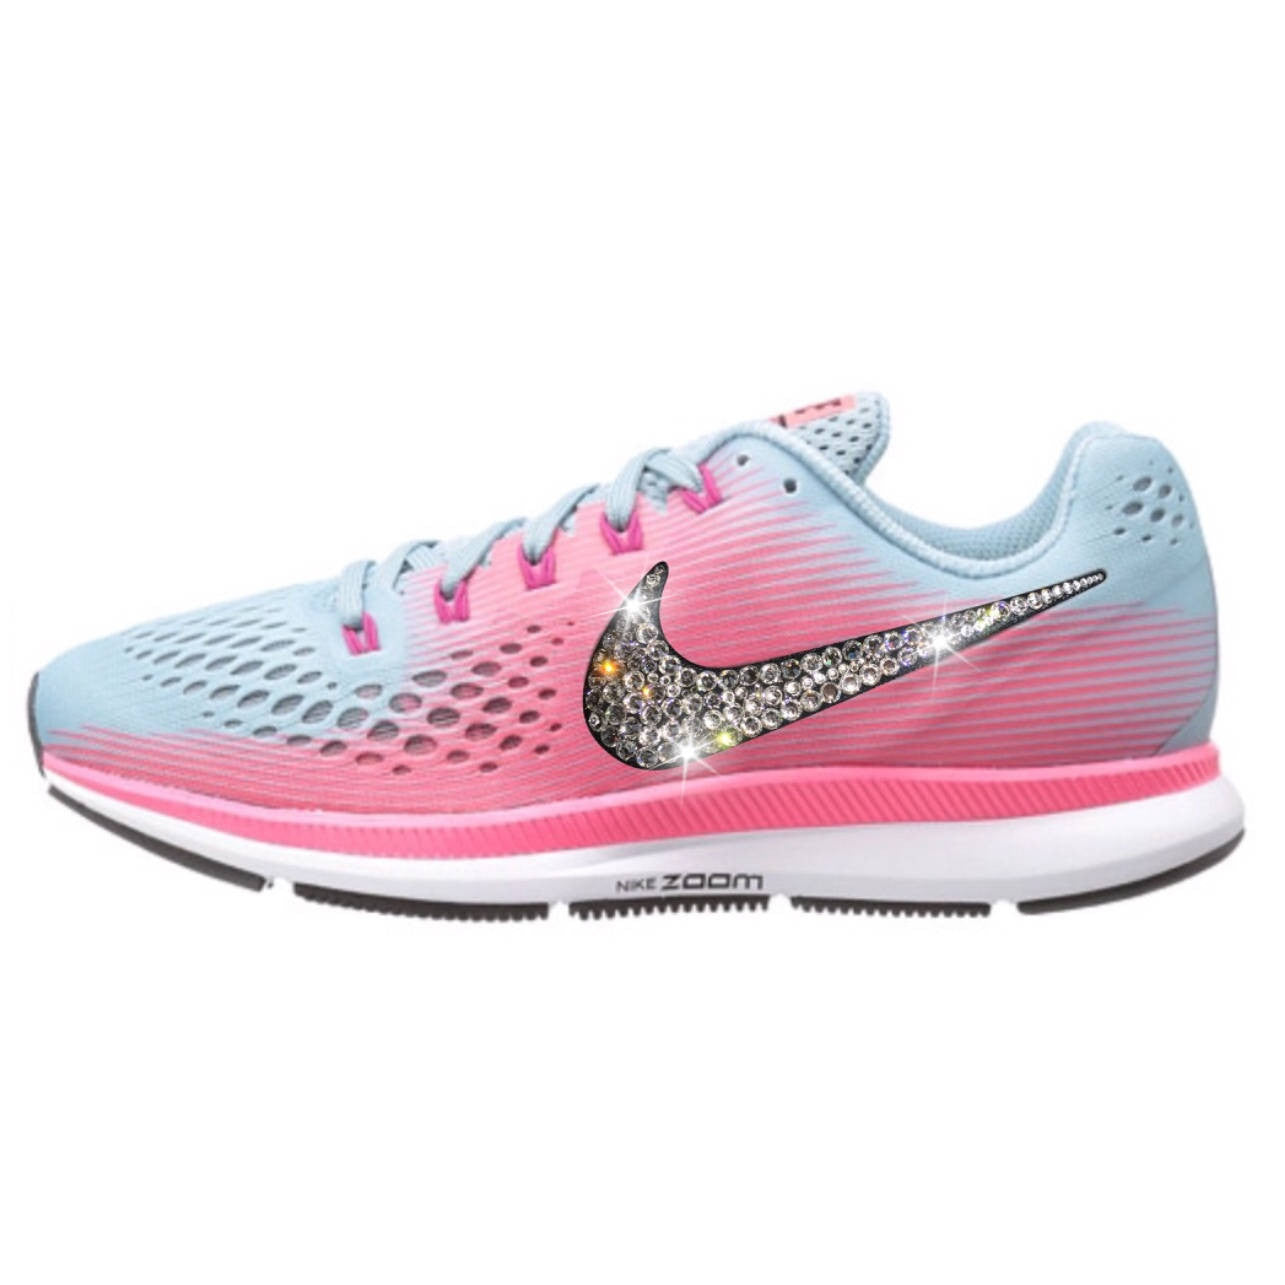 95e8c1129e45 NEW Bling Nike Air Zoom Pegasus 34 Shoes with Swarovski Crystals   Pink    Blue ...